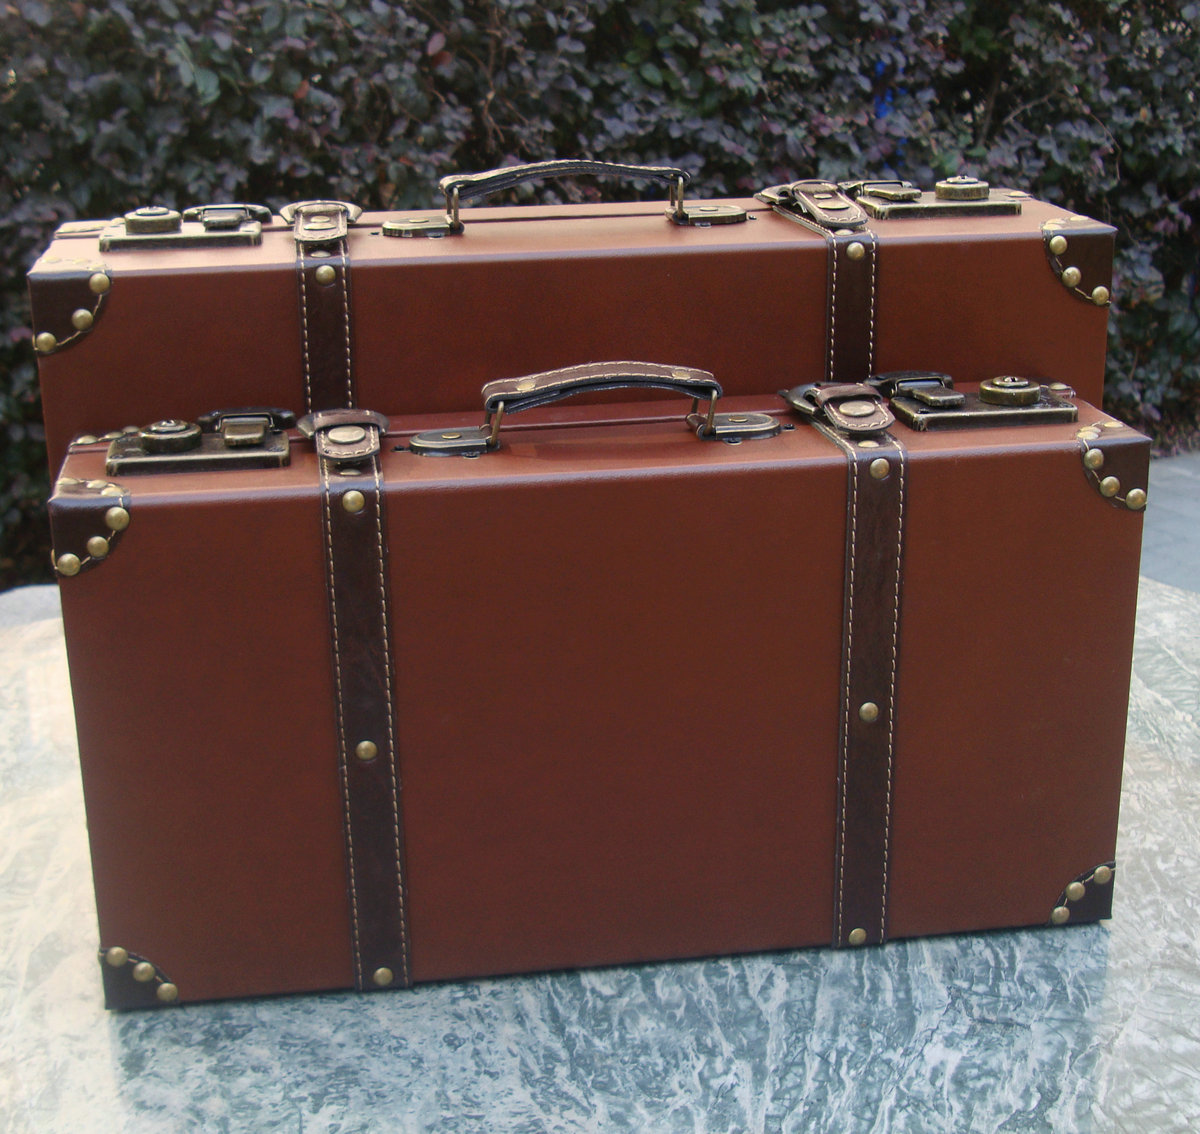 Popular vintage suitcase buy cheap vintage suitcase lots - Vintage suitcase ...